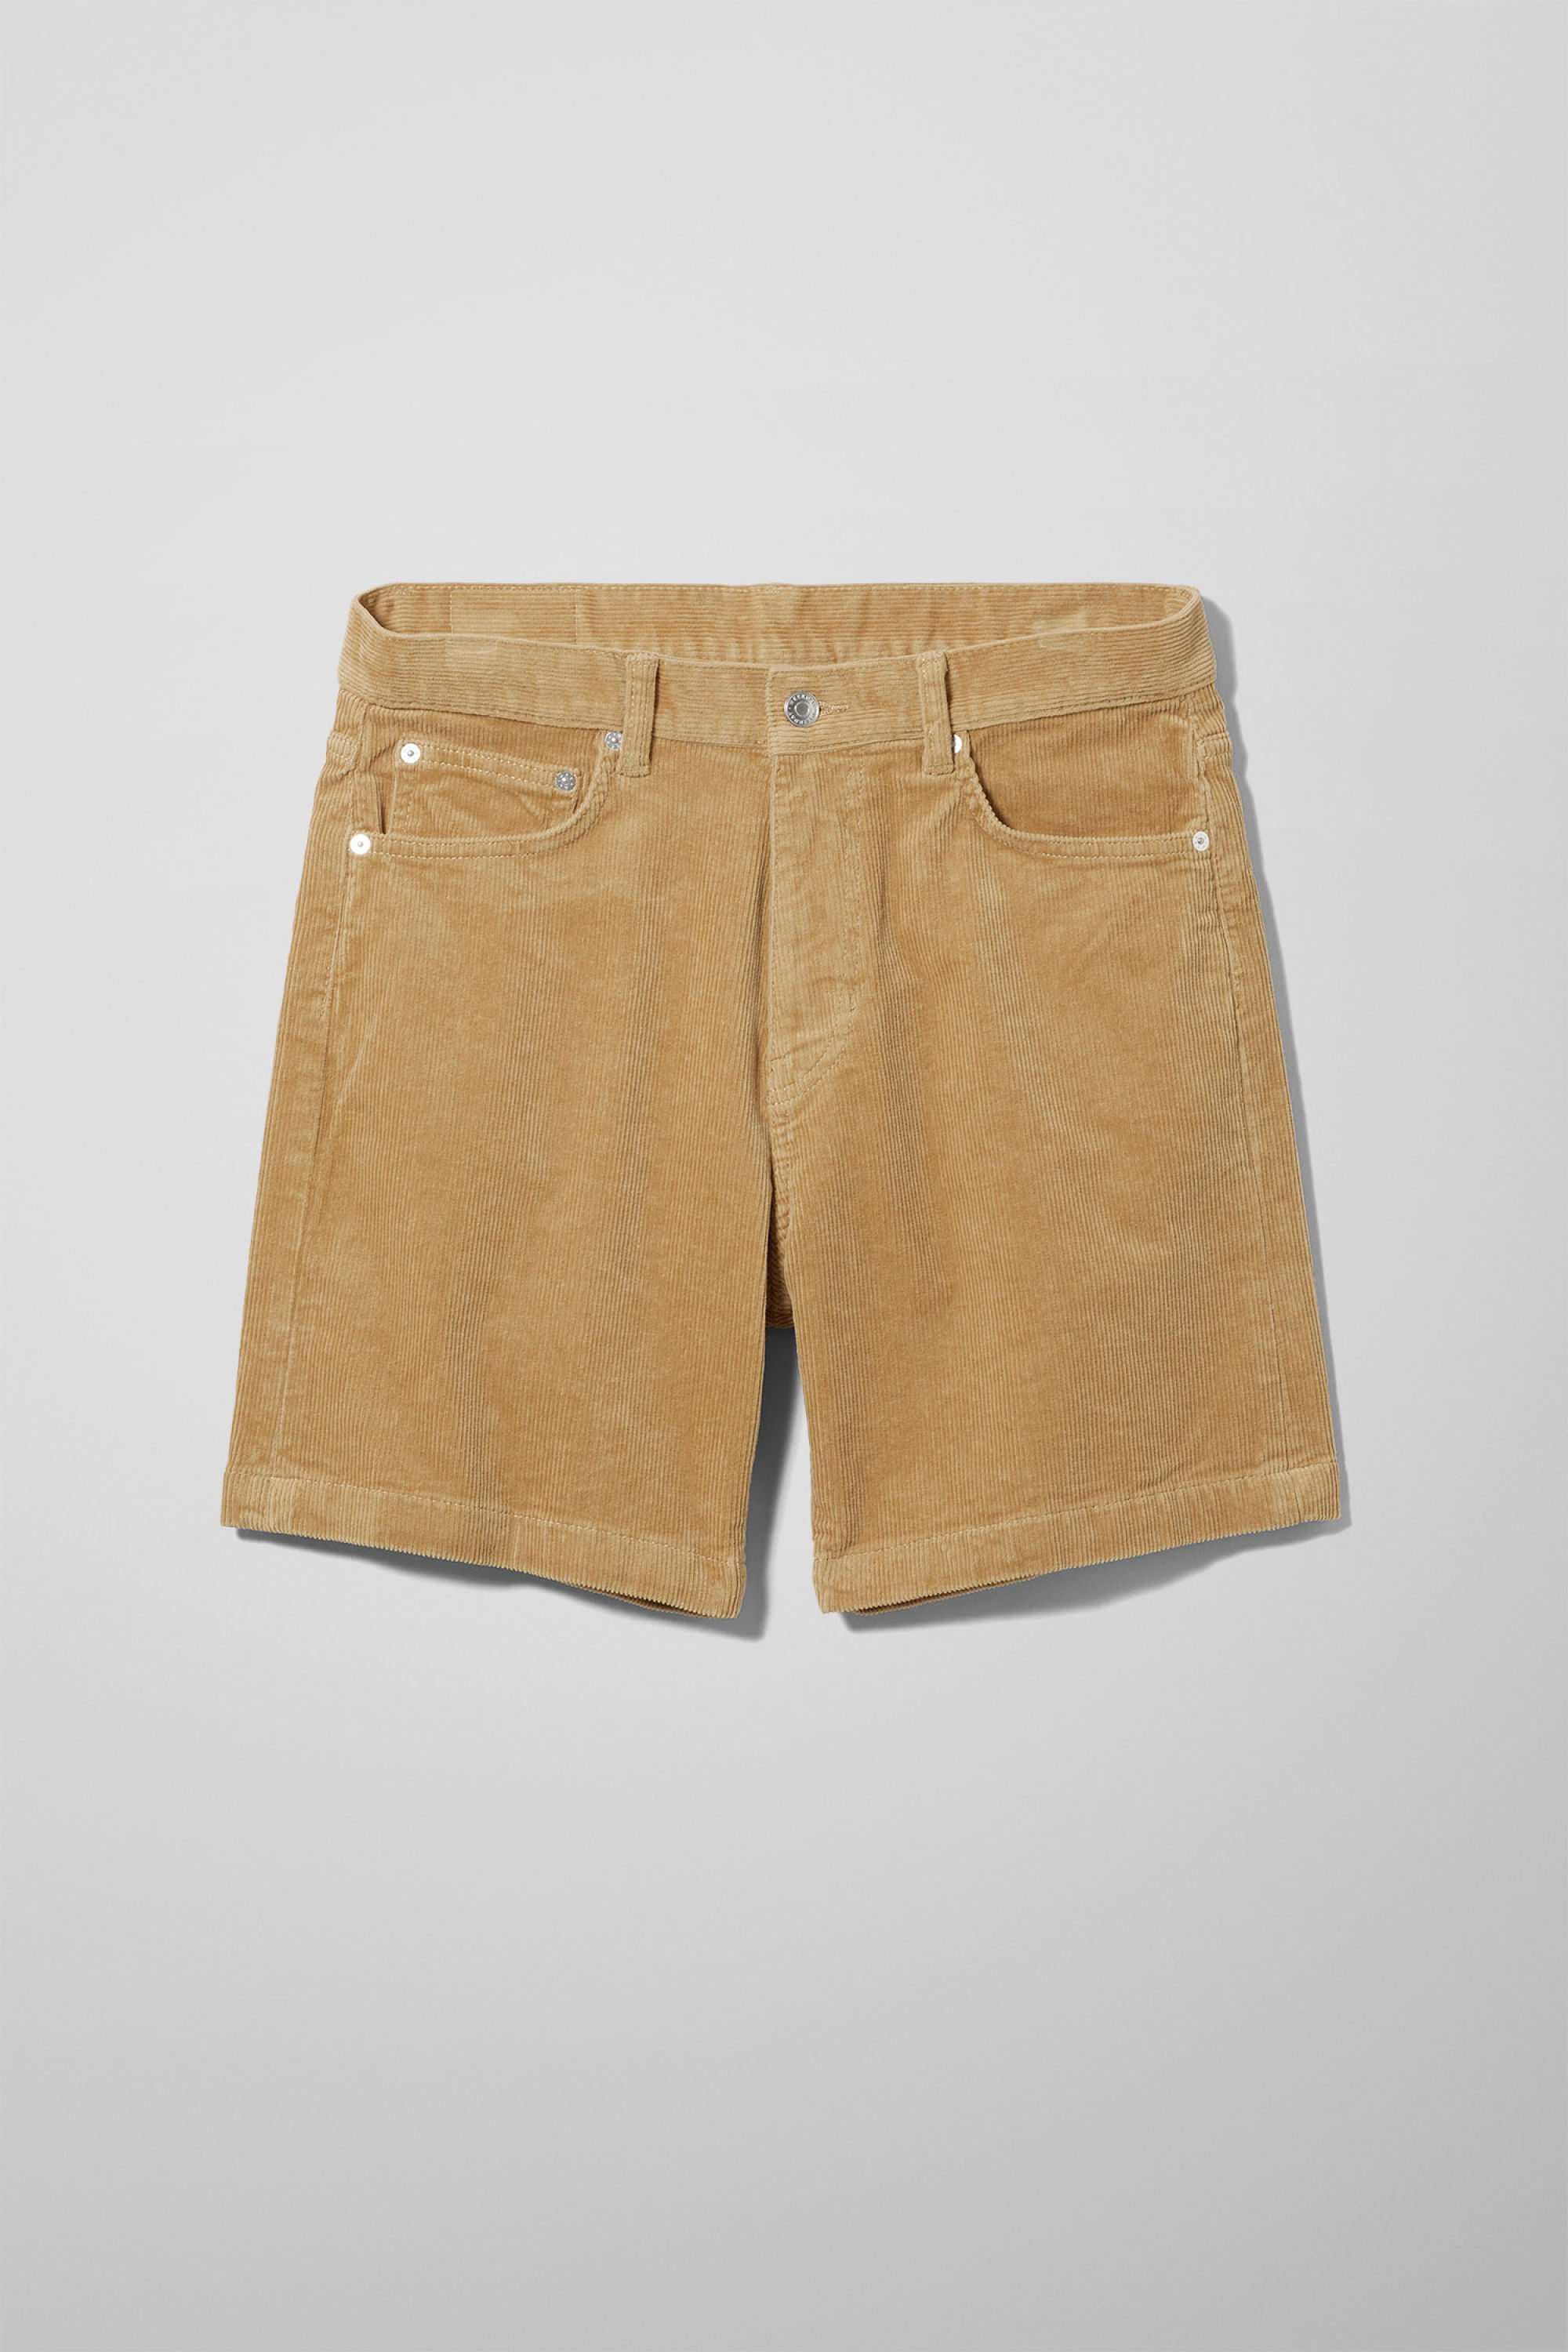 9e8ca161f80 Shorts - Categories - Men - Weekday